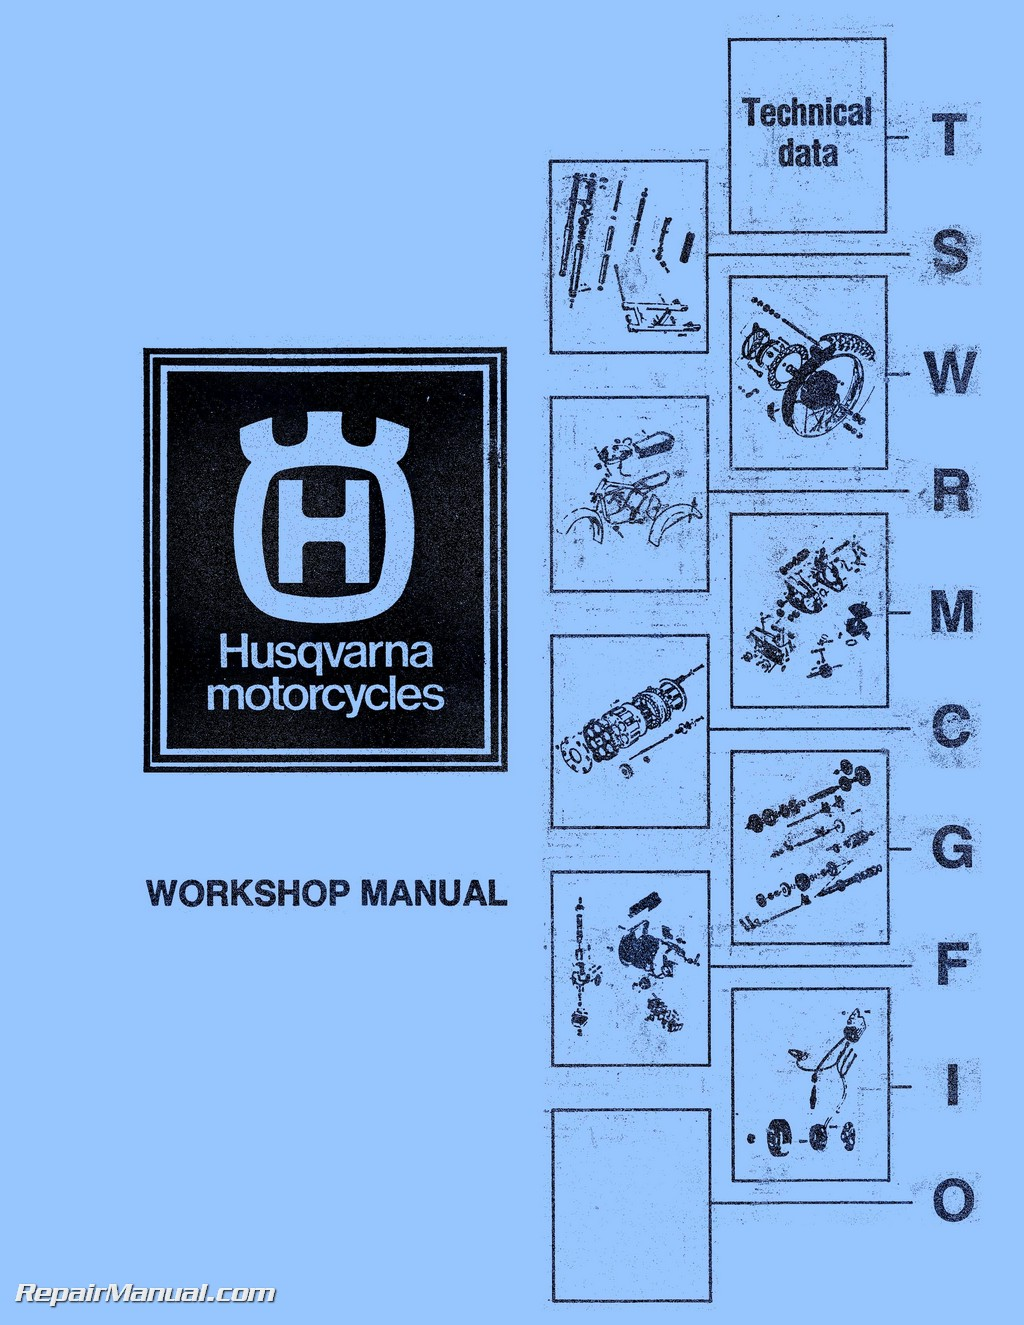 Husqvarna CR WR RT Motorcycle Manual 125 175 250 360 390 400 450 460cc  1973-1979